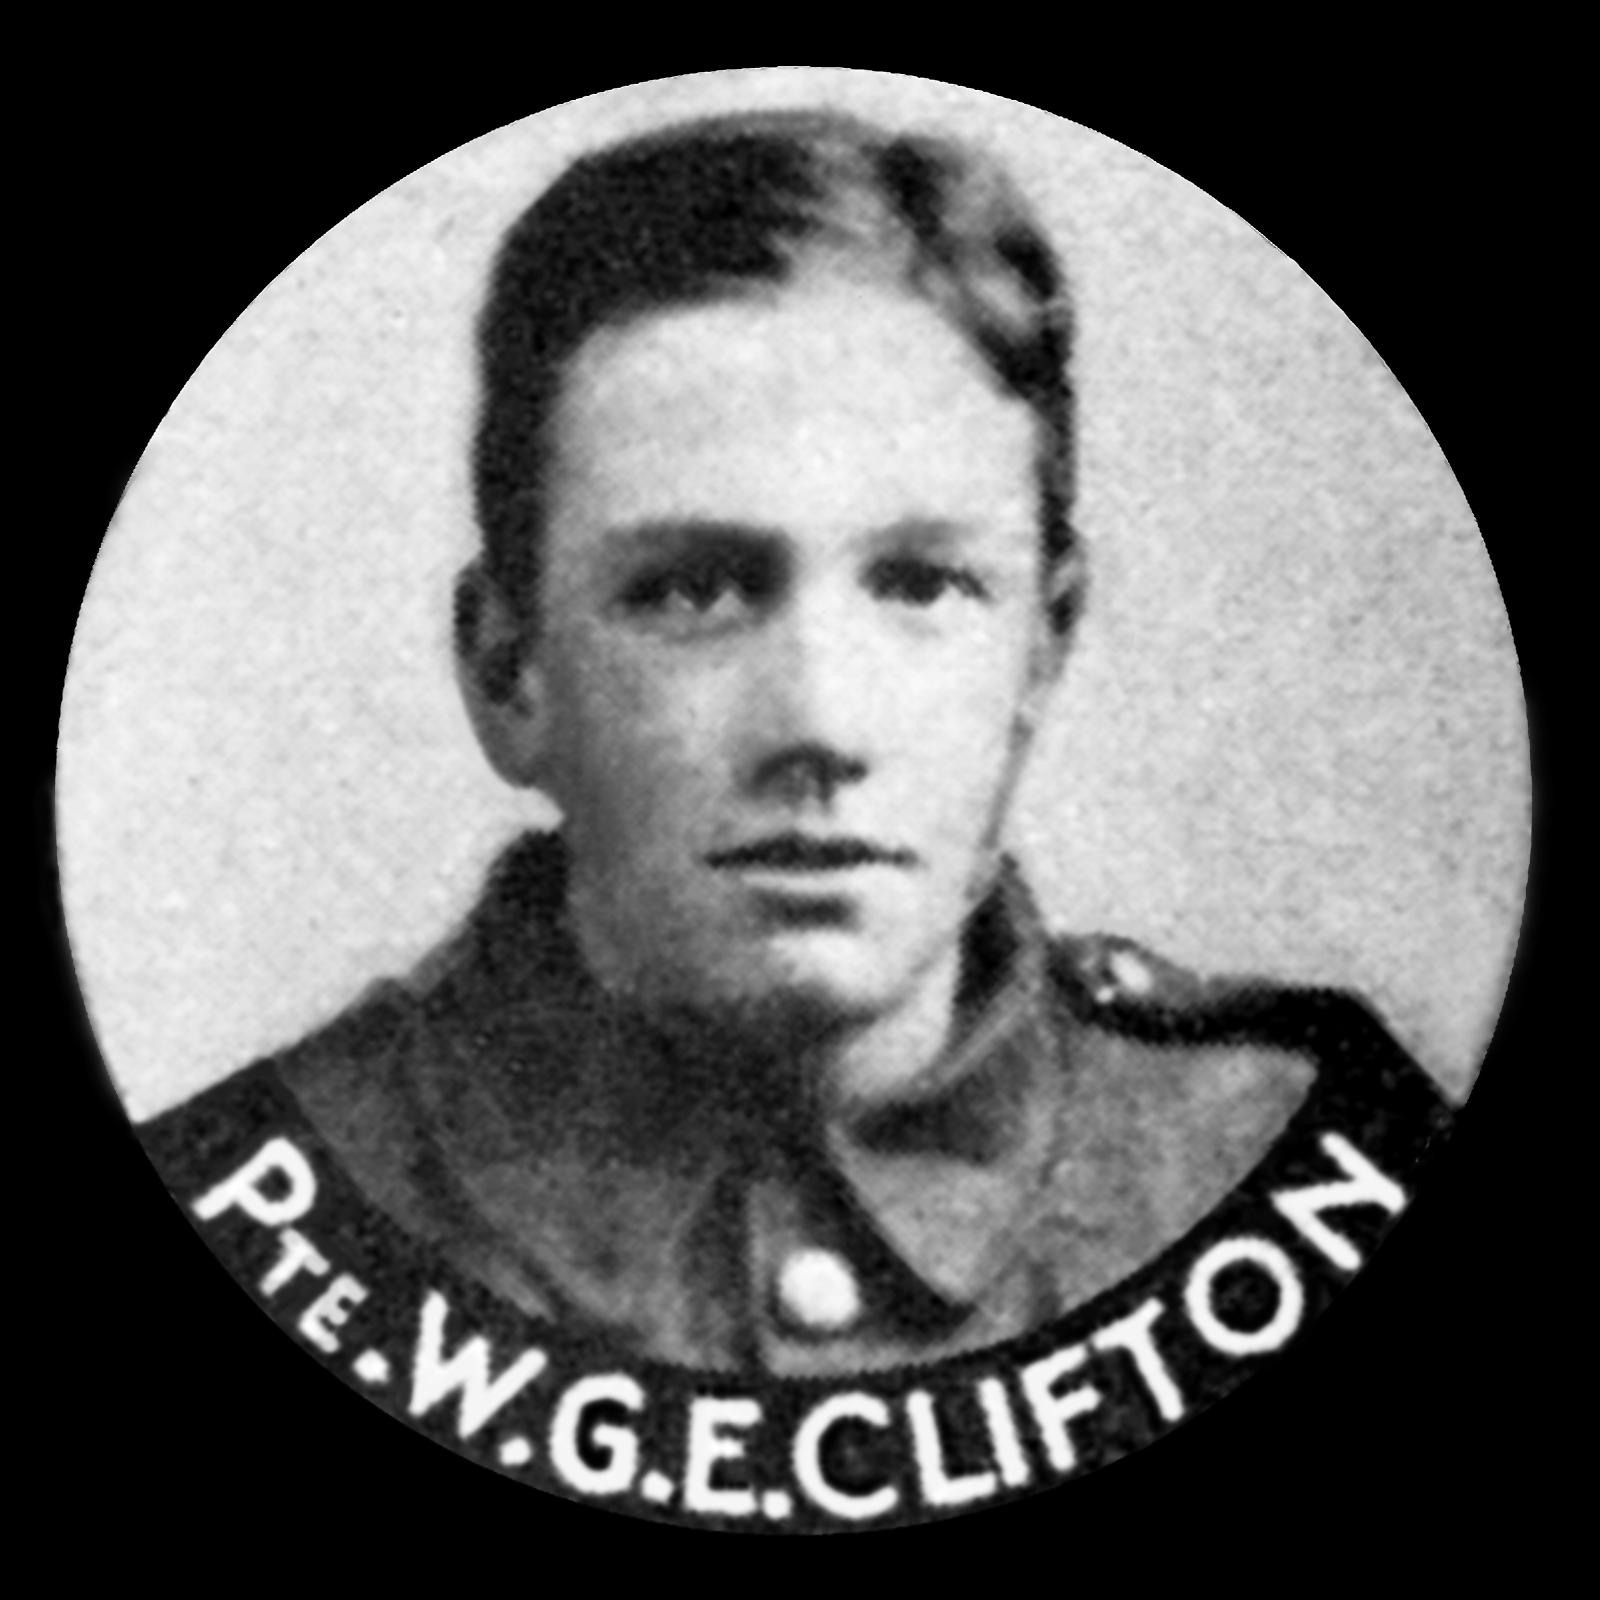 CLIFTON William George Edward